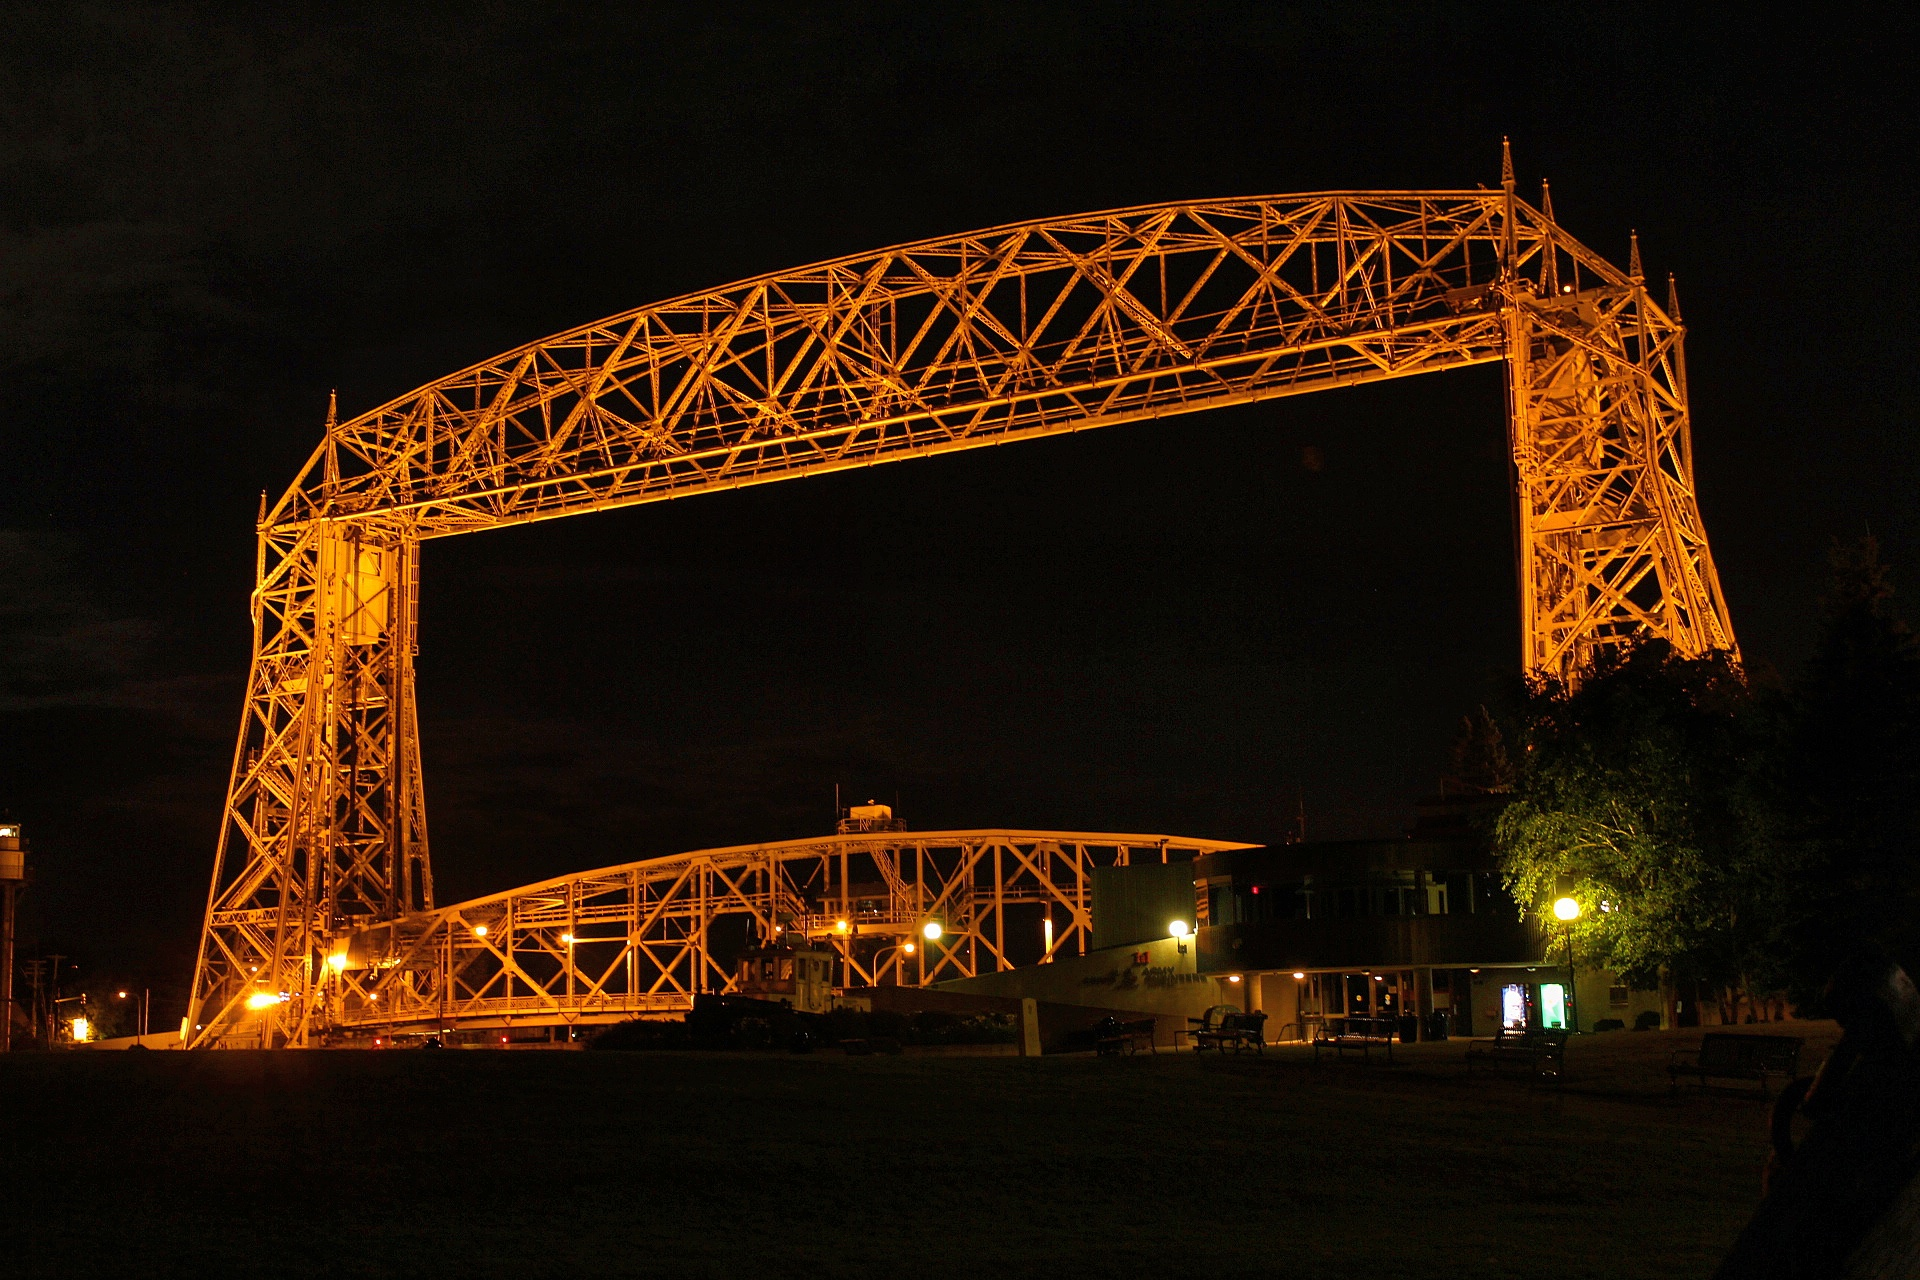 stopped by the lift bridge while waiting for the skies to clear